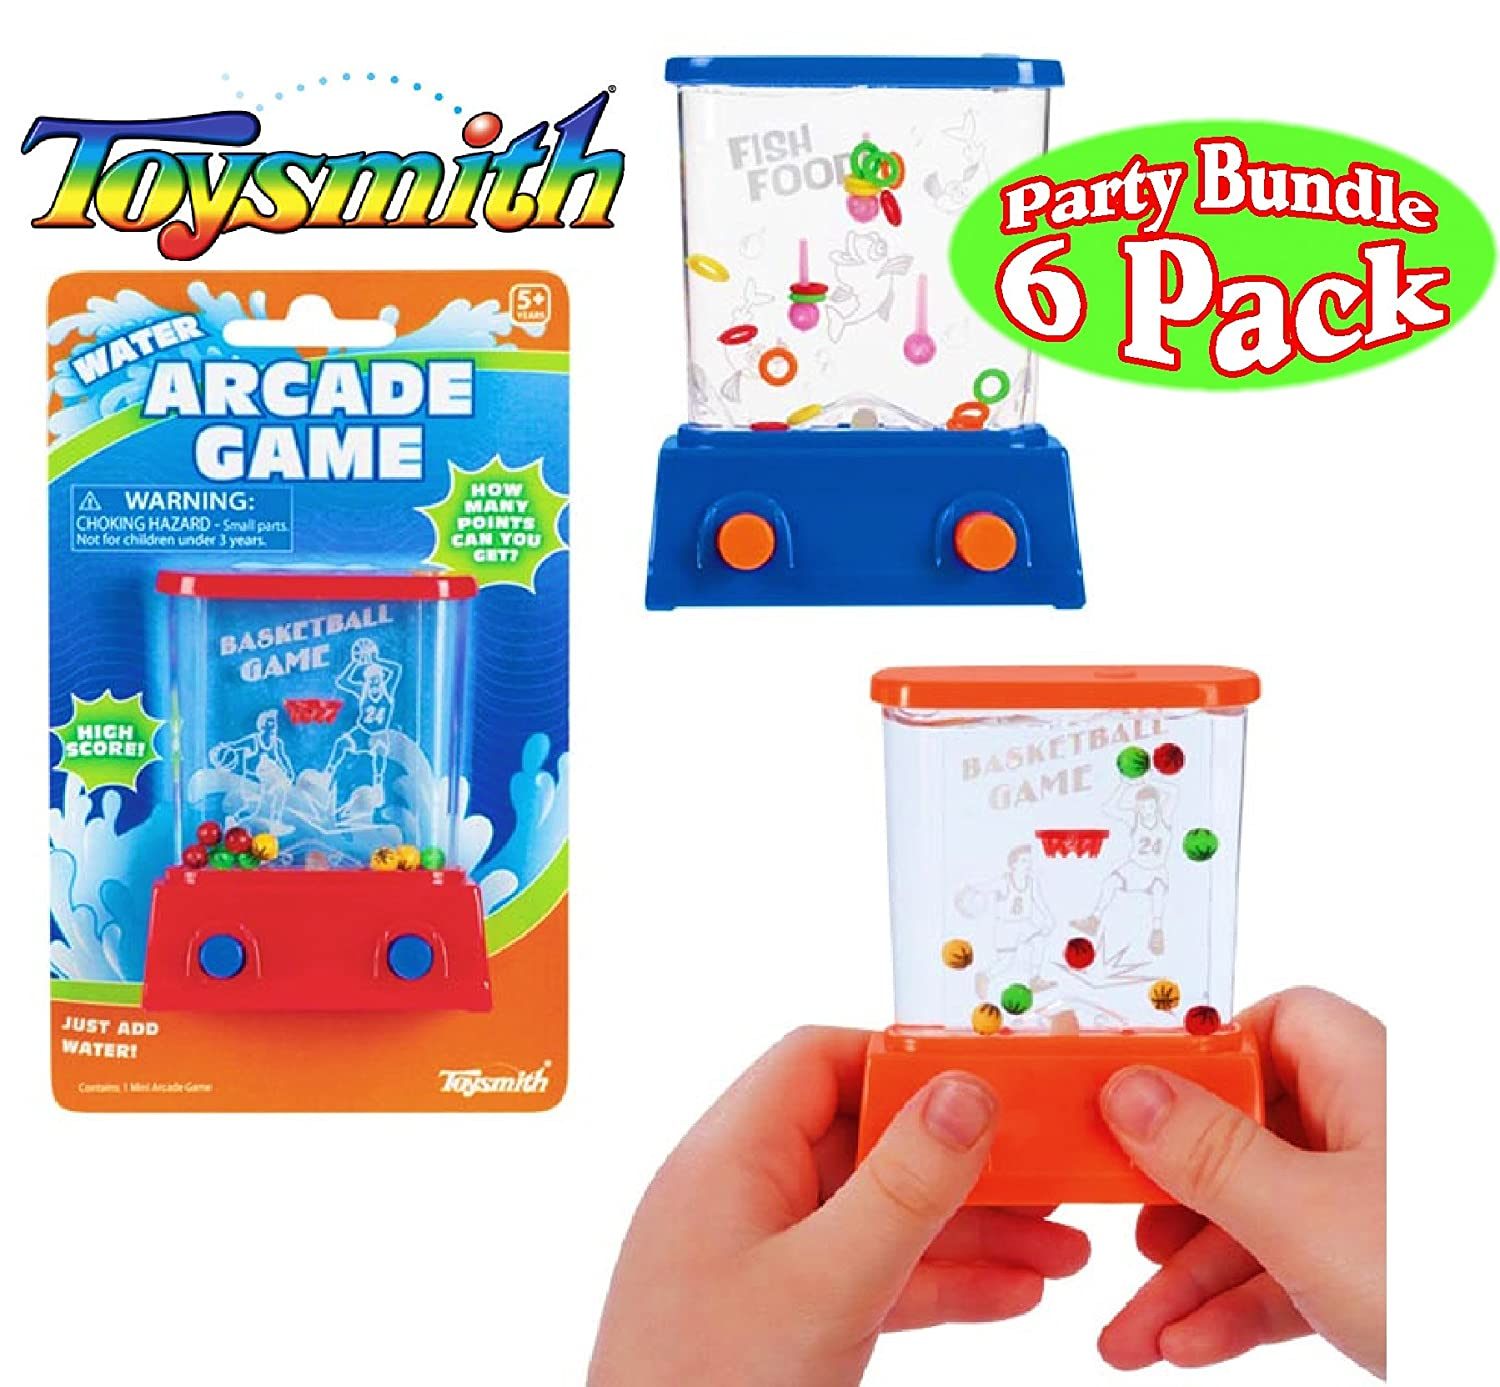 Handheld coloring games for toddlers - Toysmith Mini Handheld Water Arcade Games Basketball Fish Food Party Set Bundle Assorted Colors By Toysmith Amazon Co Uk Toys Games